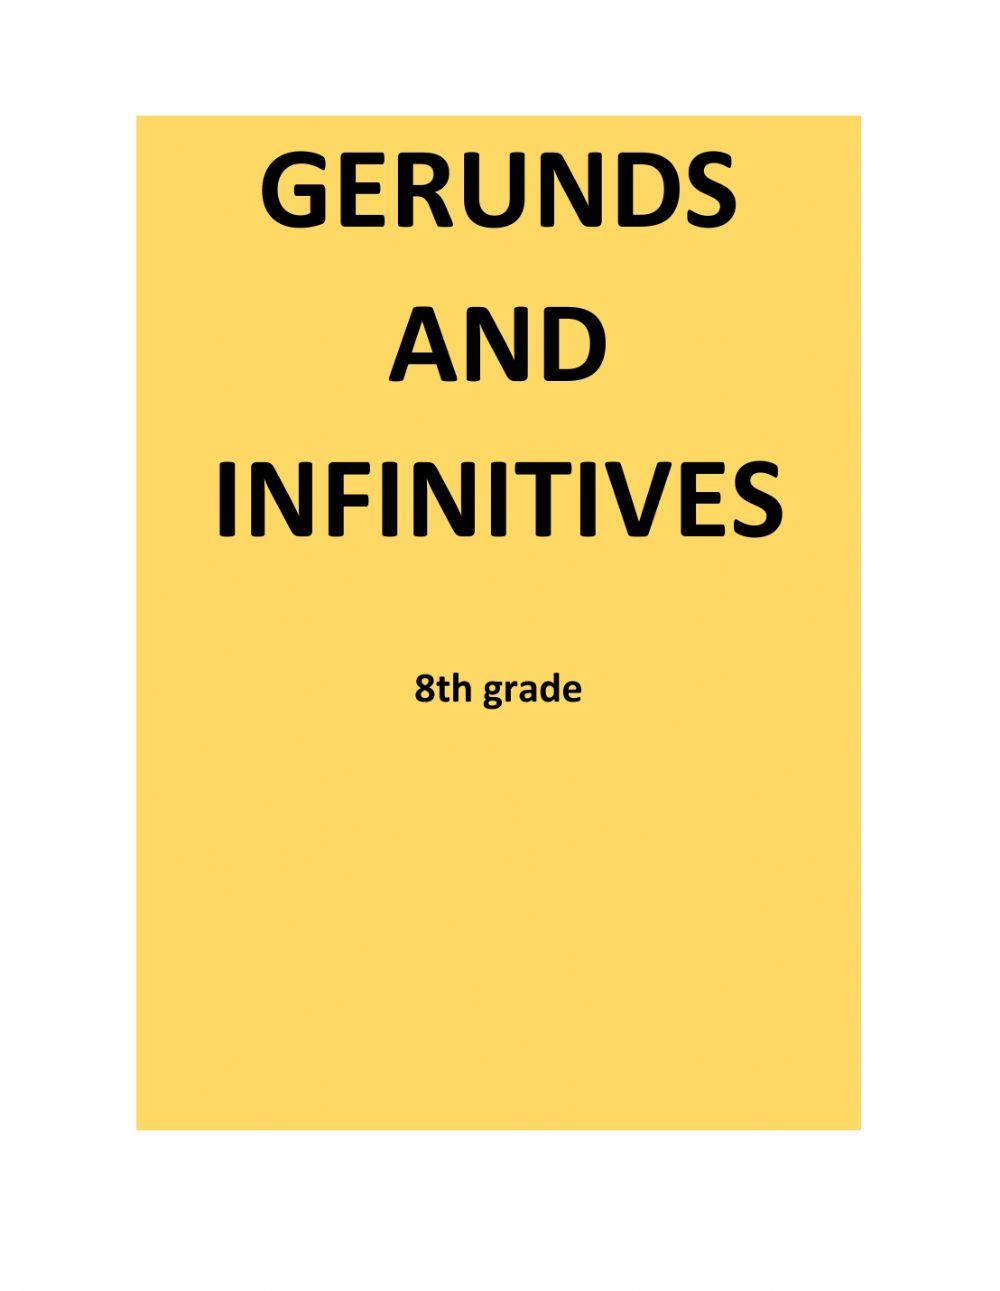 medium resolution of Gerunds and infinitives interactive worksheet for 8th grade